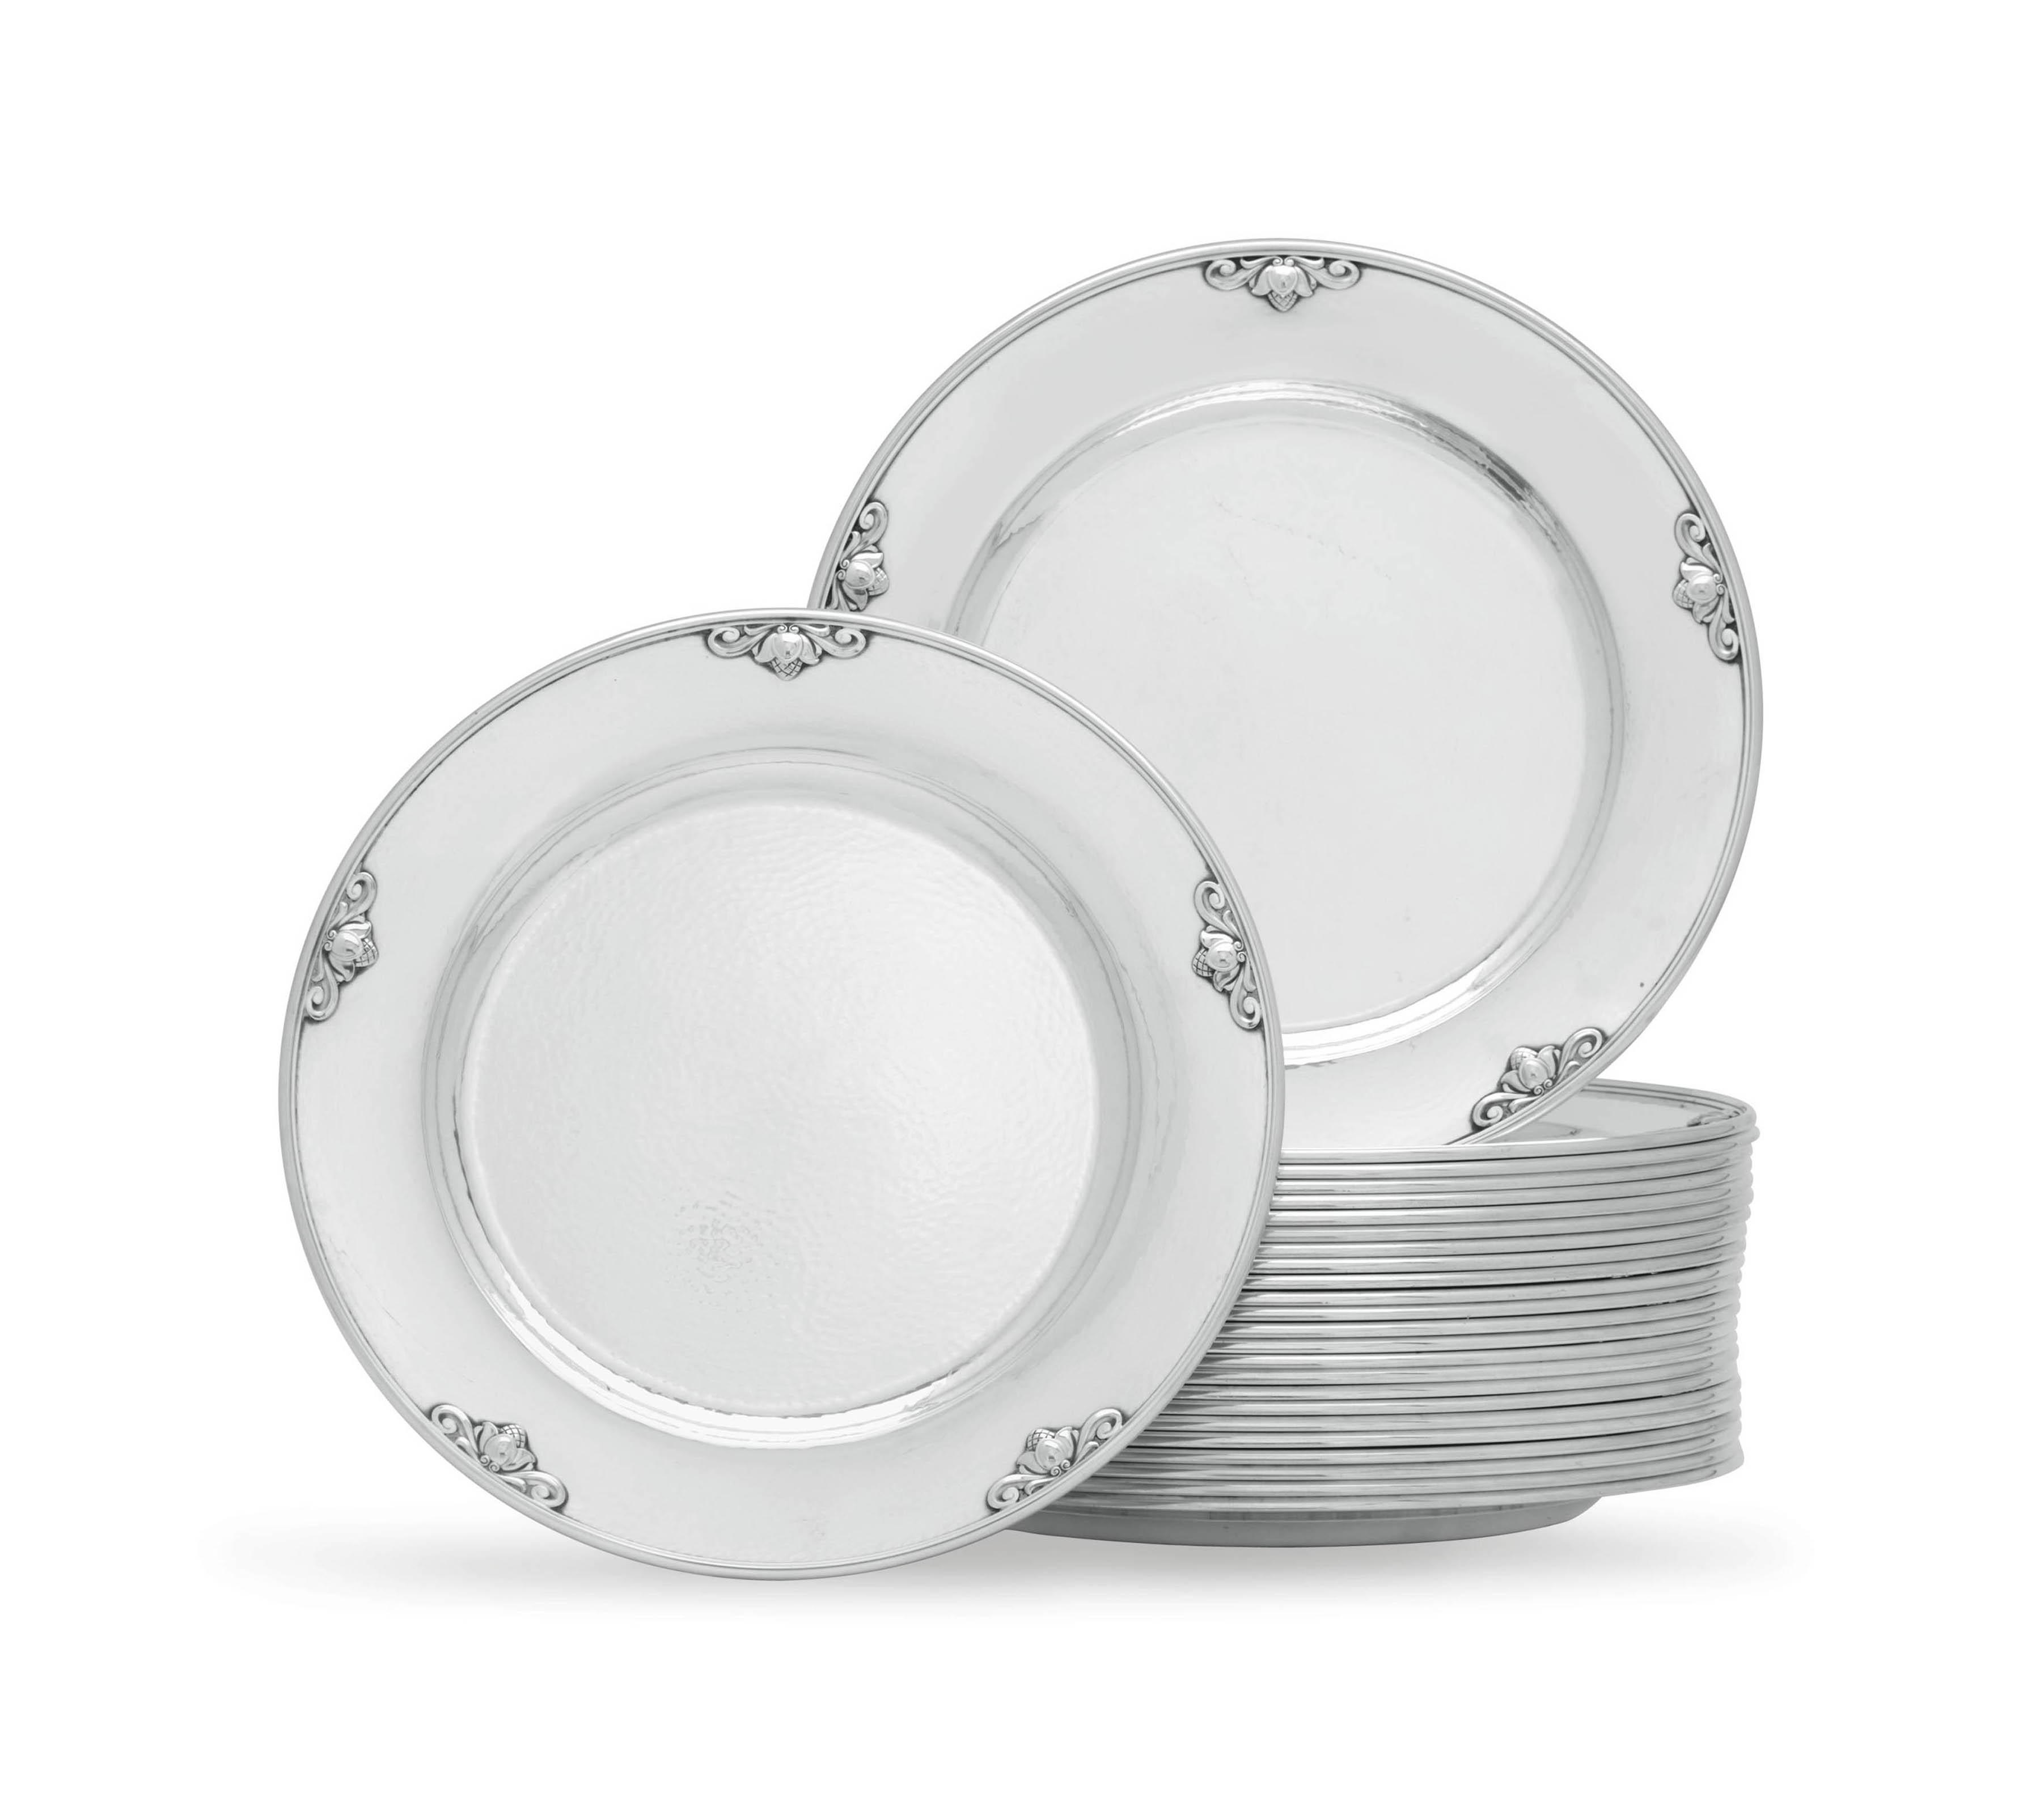 A SET OF TWENTY-FIVE DANISH SILVER DINNER PLATES, DESIGNED BY JOHAN ROHDE